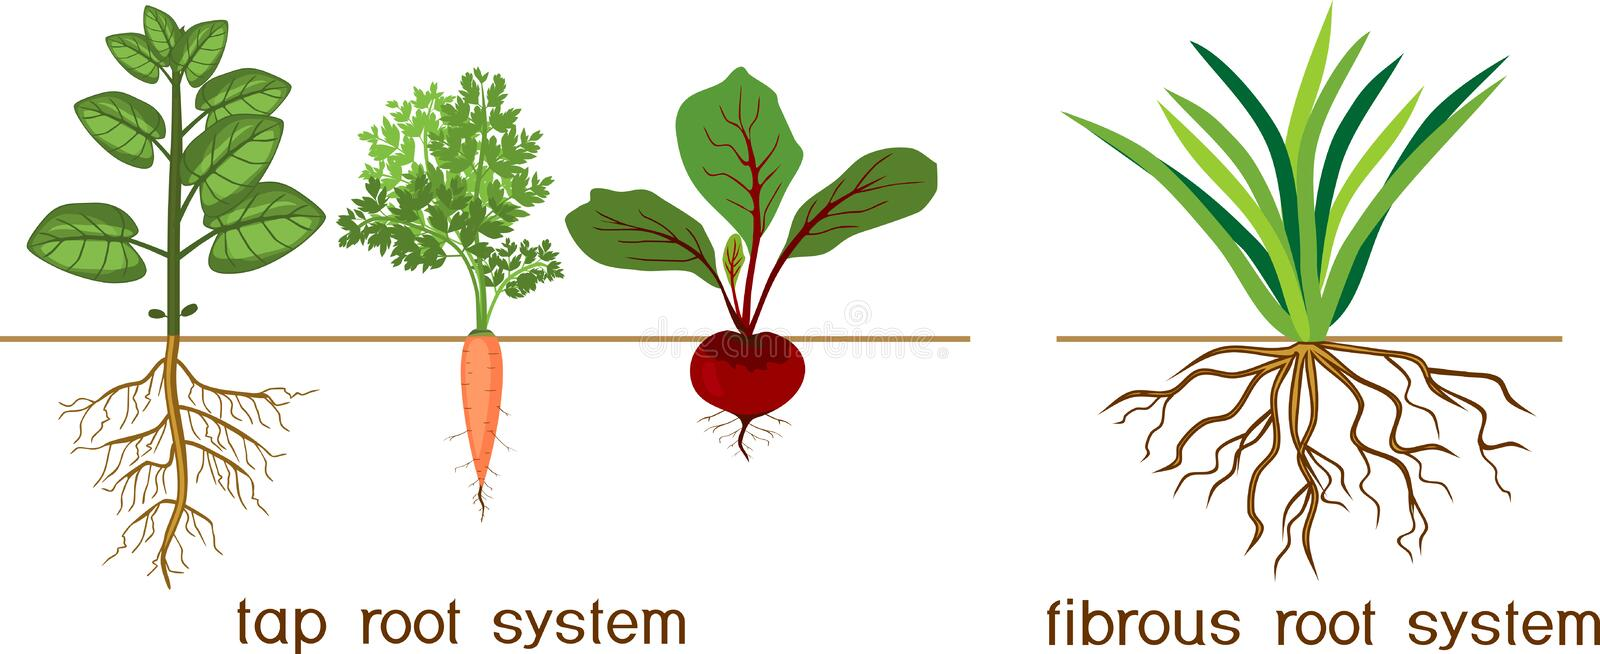 Plants with different types of root systems: tap and fibrous root systems. Plants with two different types of root systems: tap and fibrous root systems stock illustration